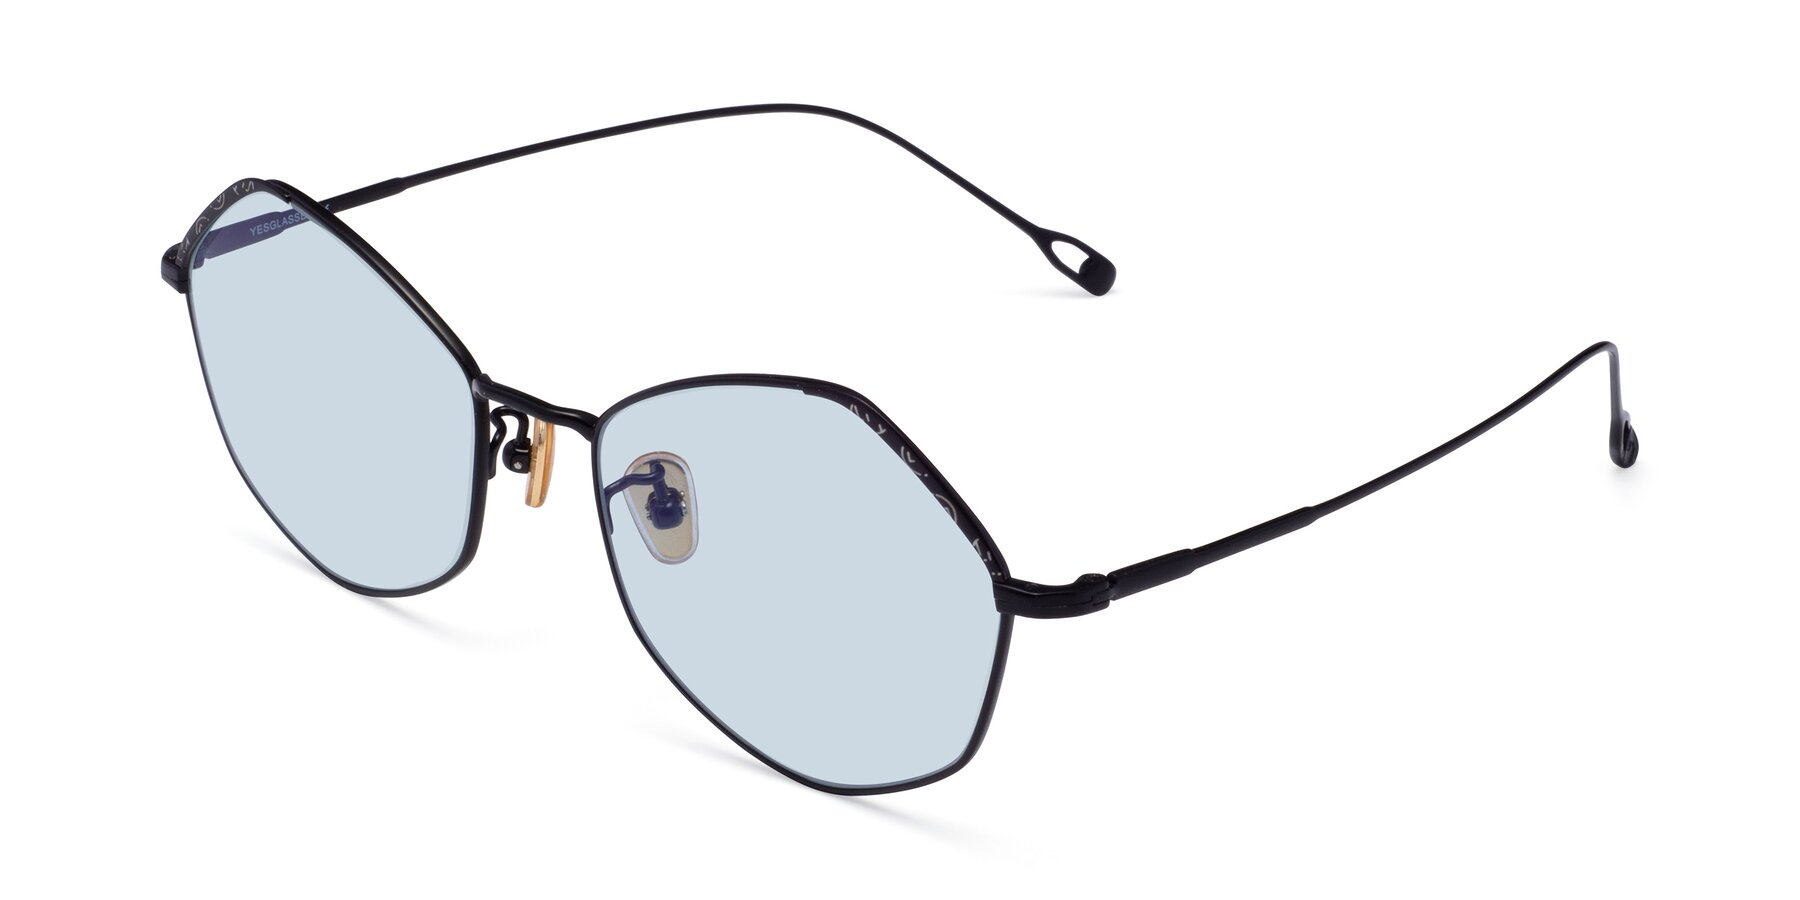 Angle of Phoenix in Black with Light Blue Tinted Lenses